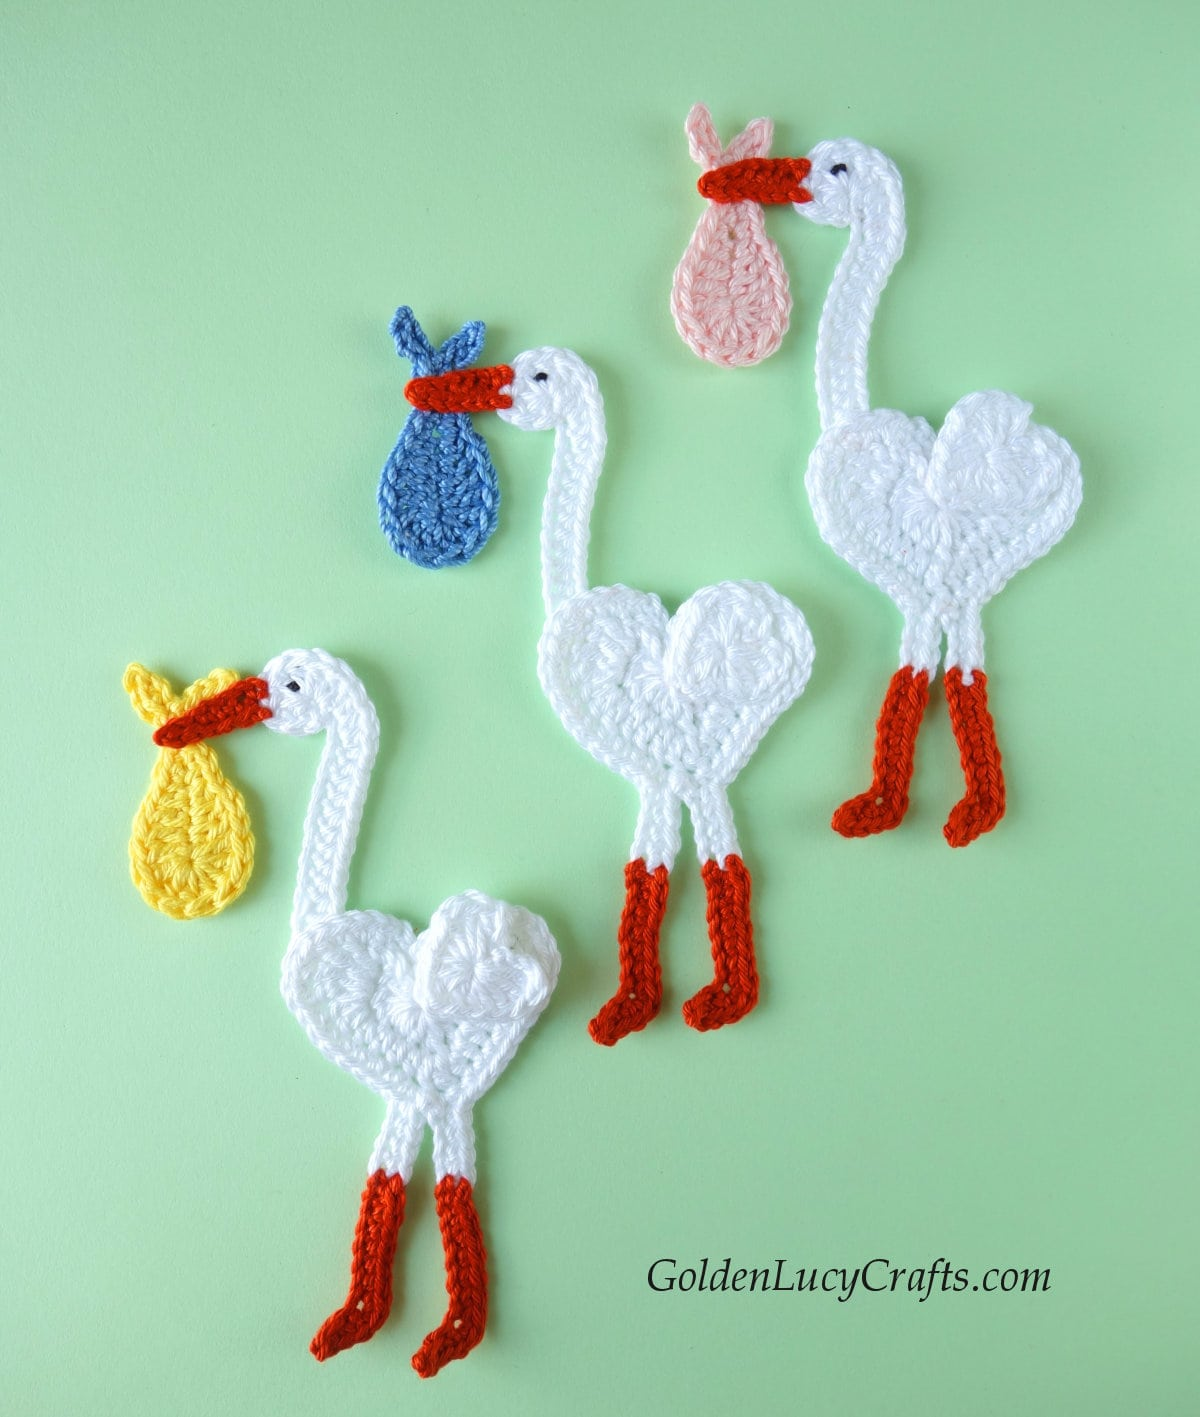 Crocheted appliques -  three storks carrying baby bundles.